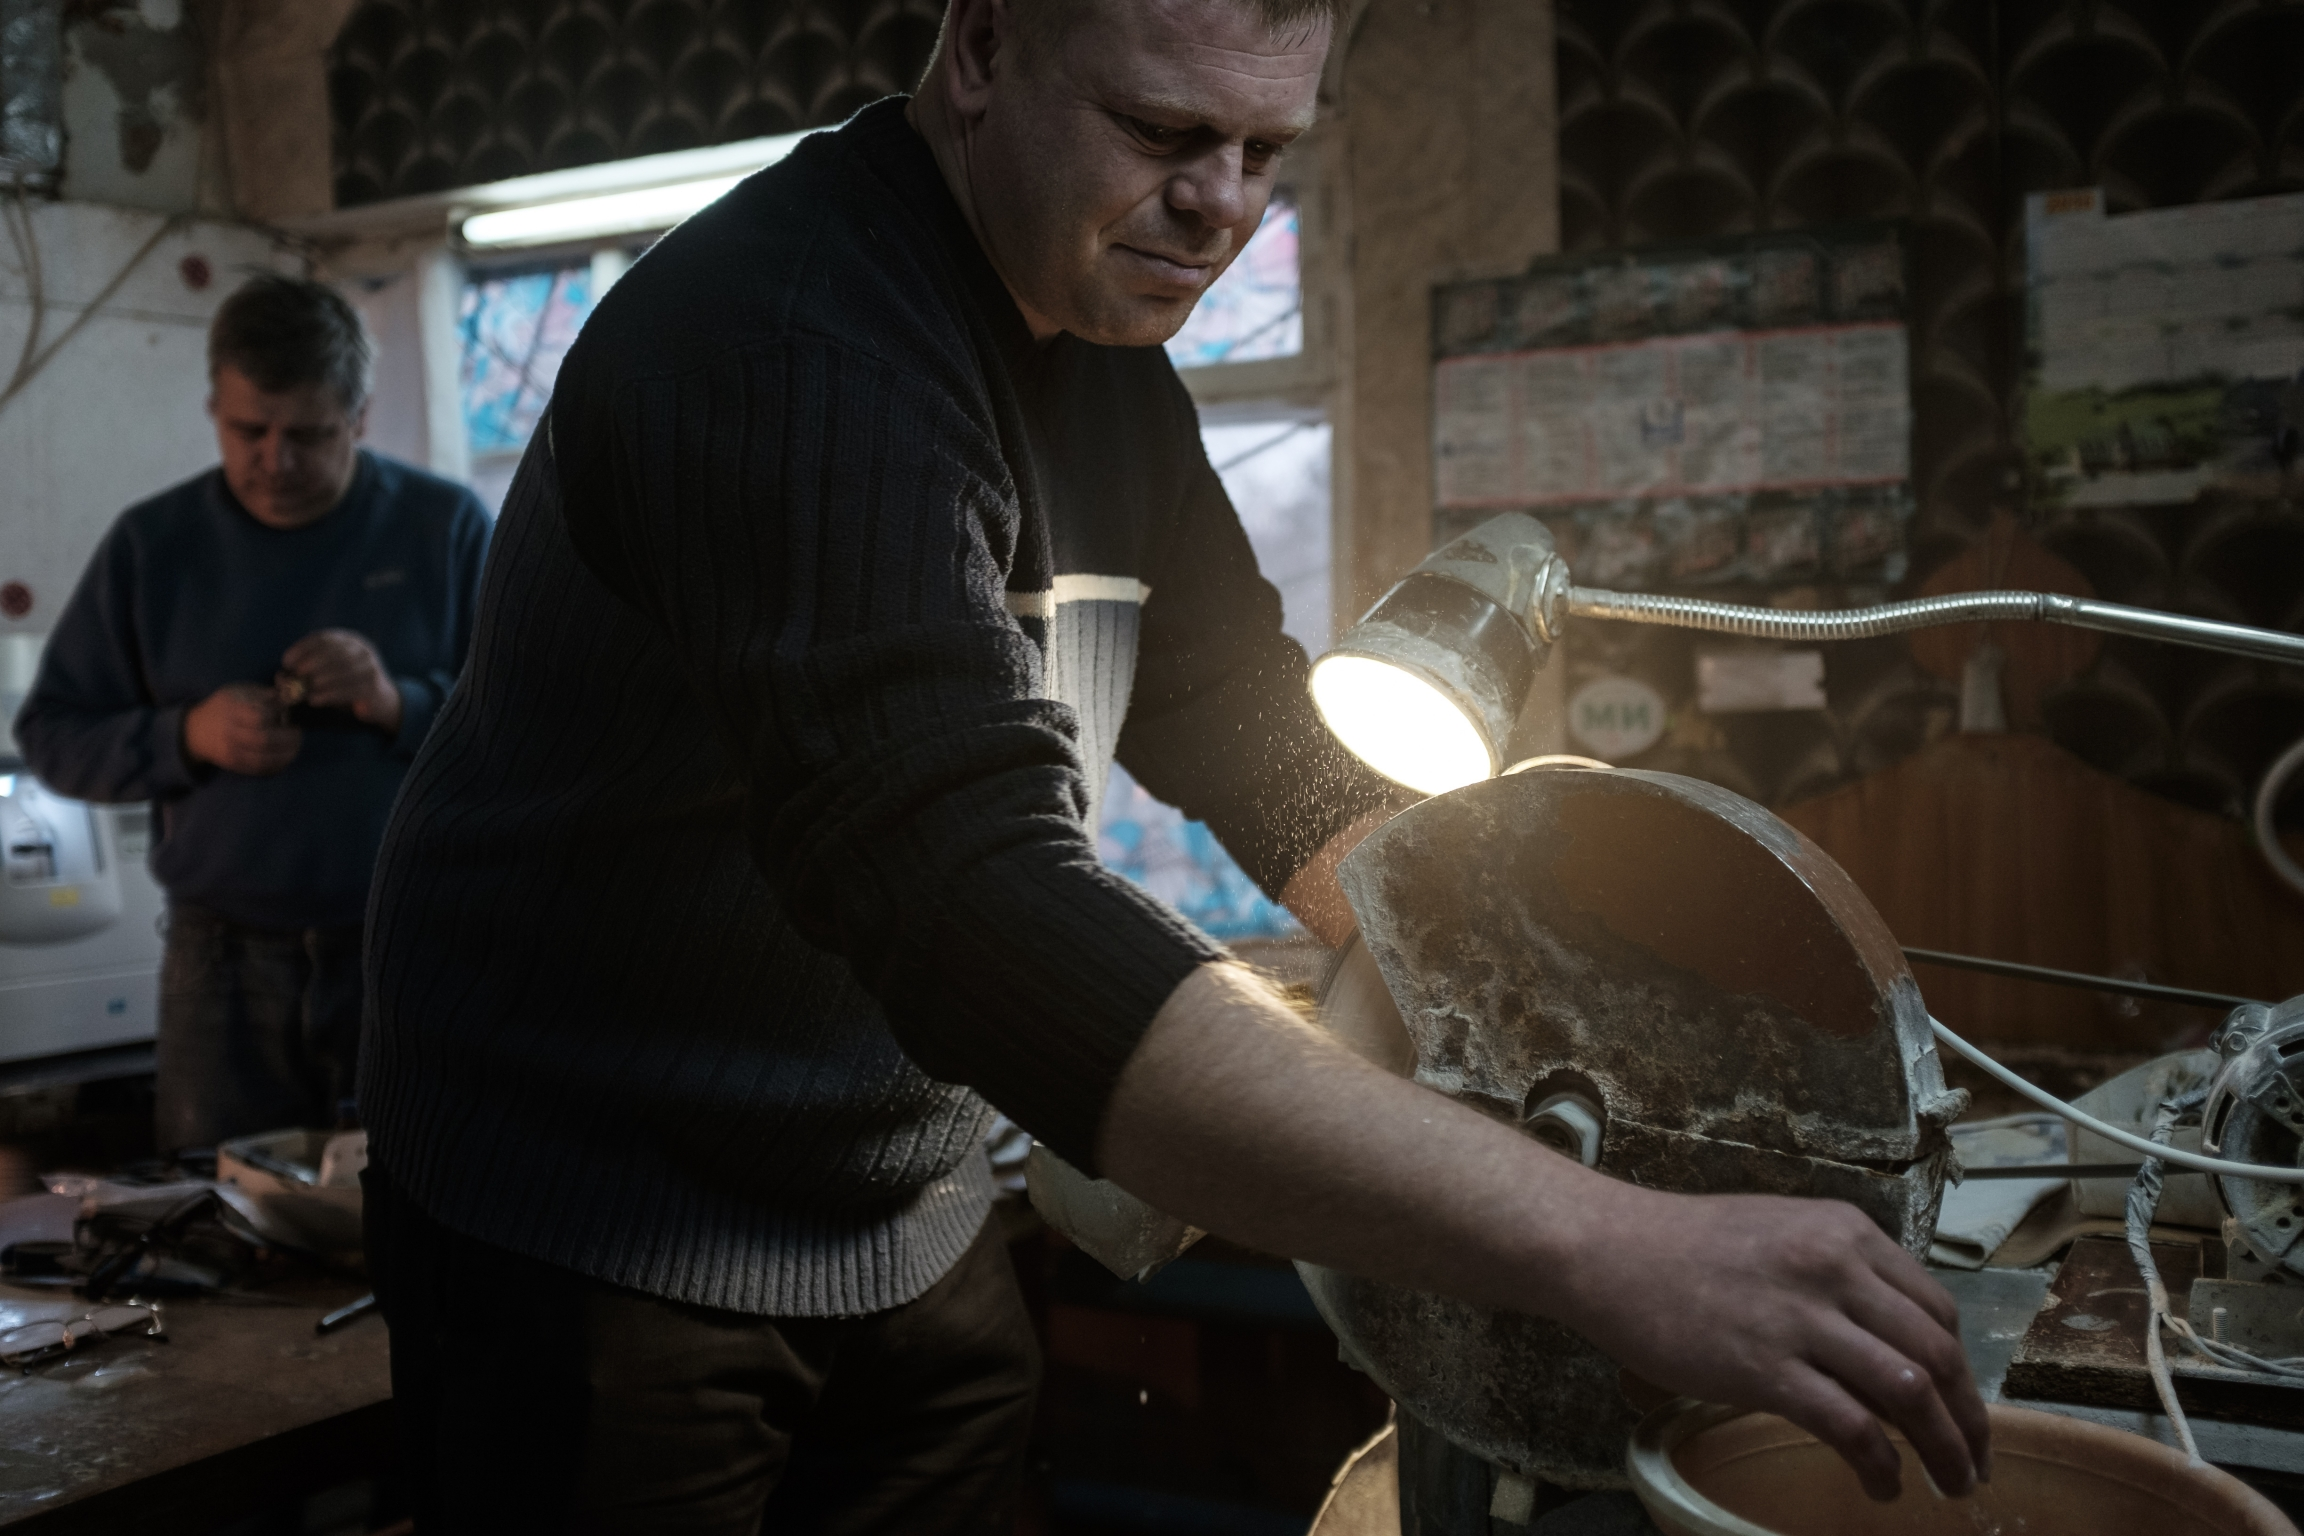 A man in shadow works at a grinder